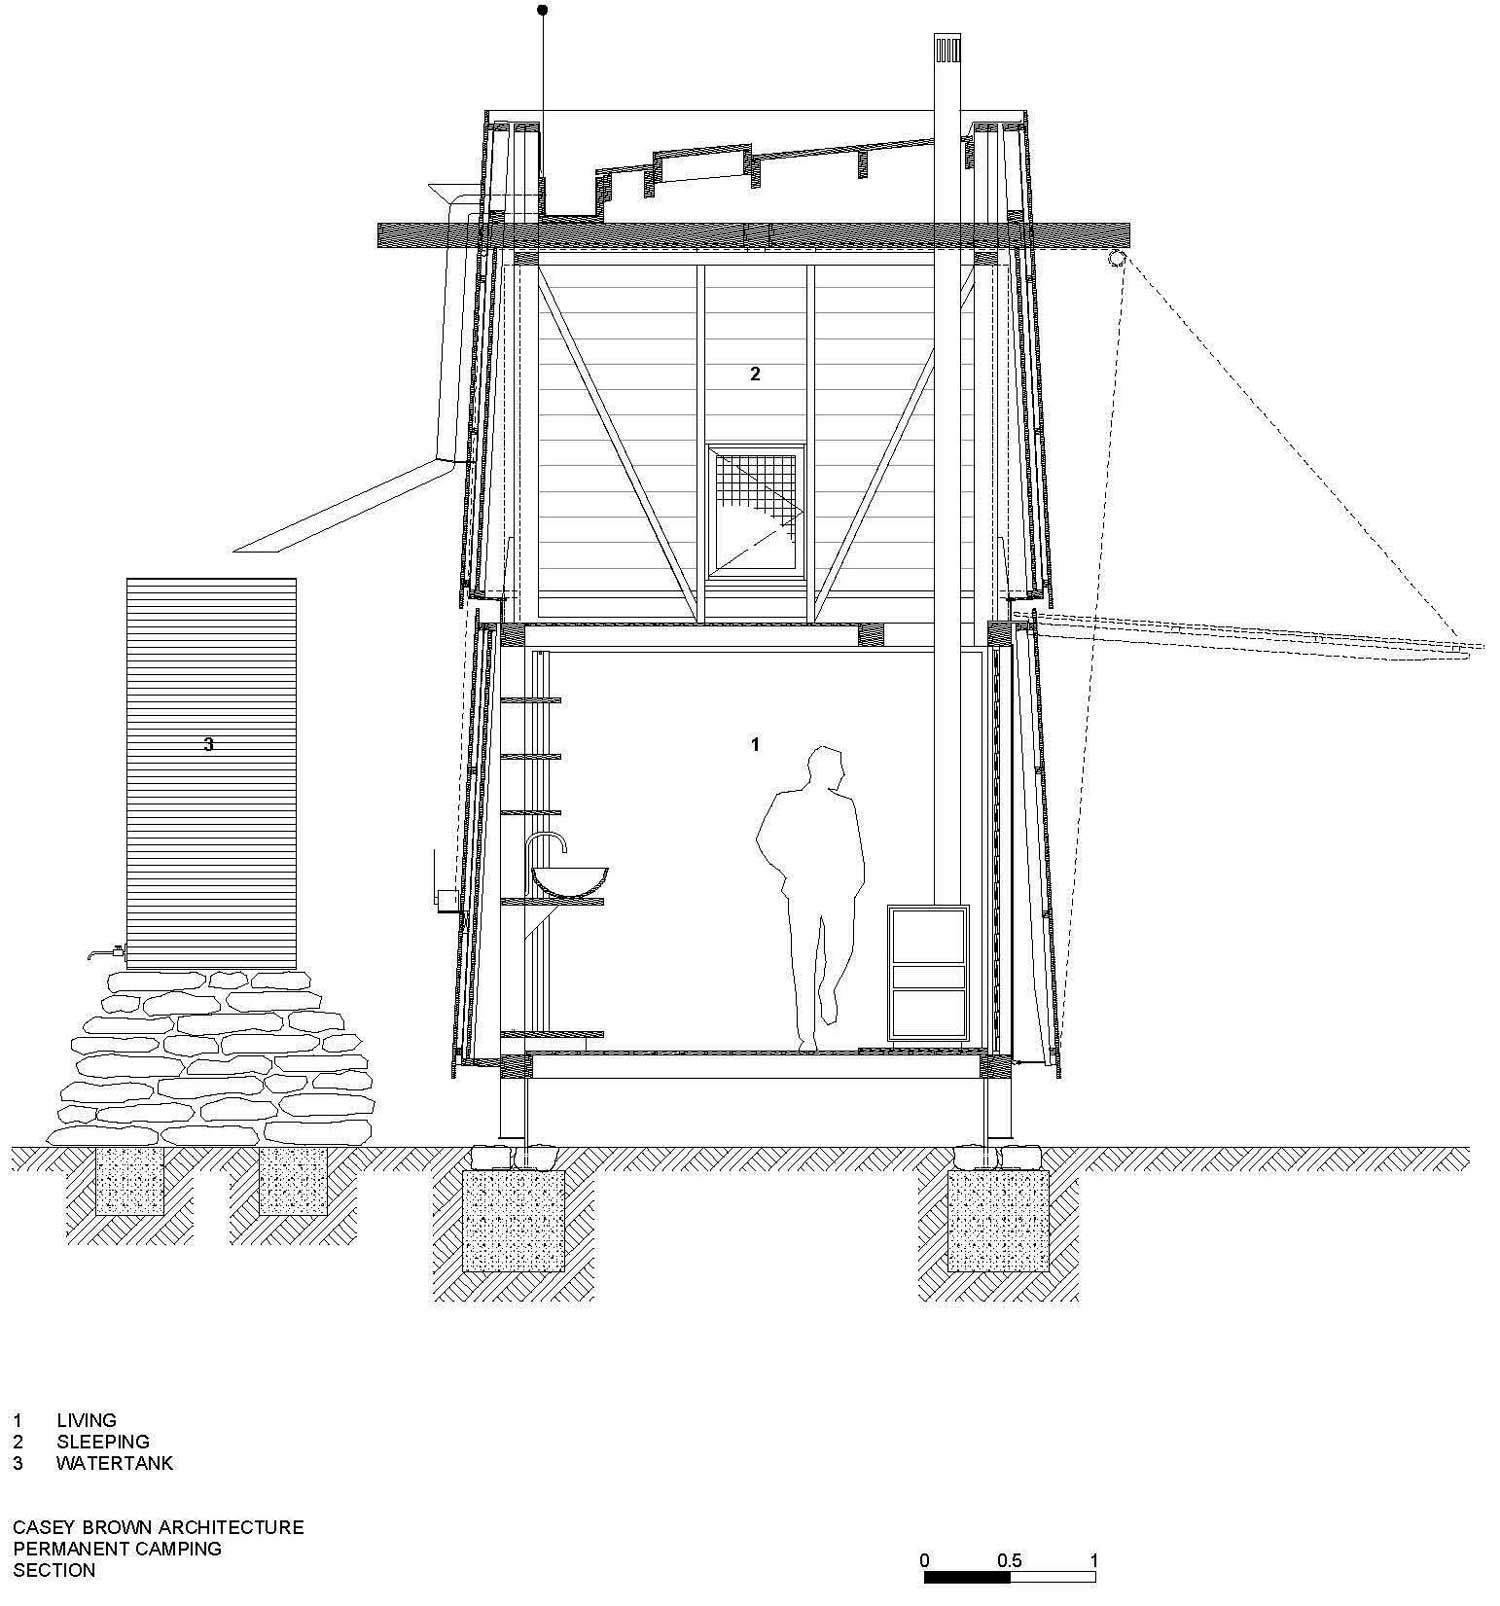 Section, Mudgee Tower, New South Wales, Australia